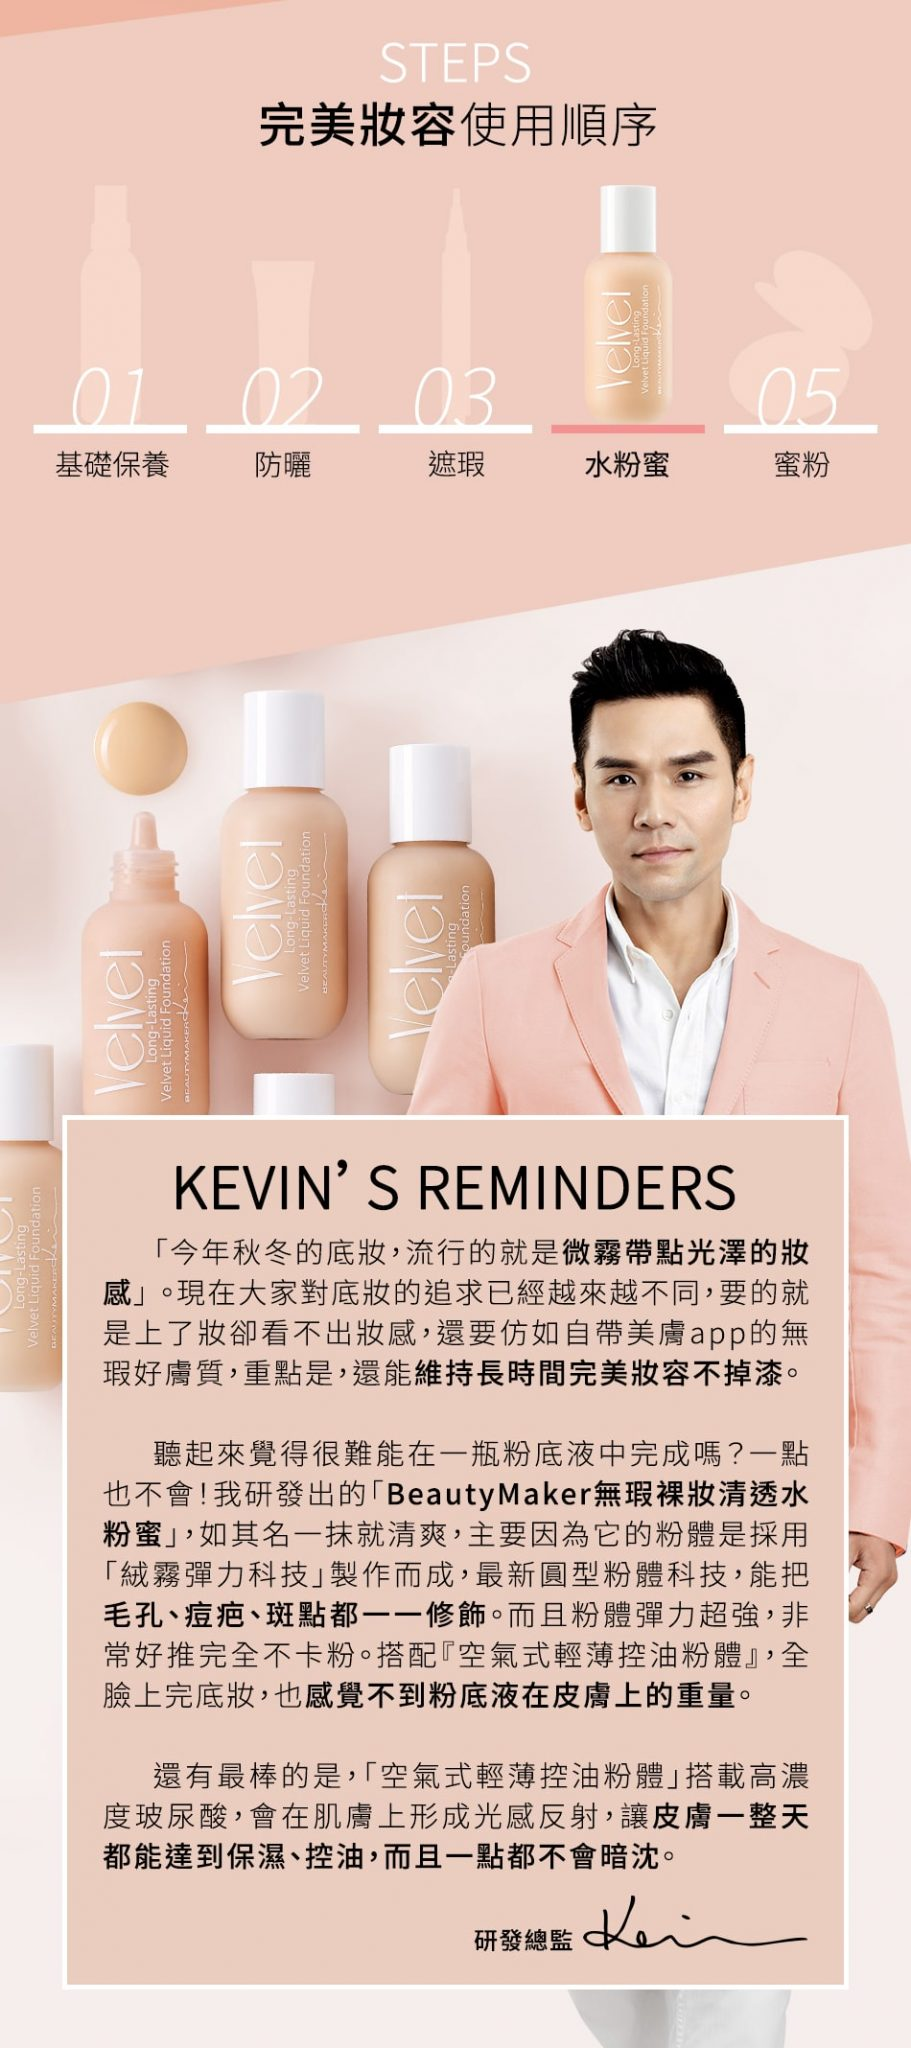 Long-Lasting Velvet Liquid Foundation - Steps & Kevin's Reminders